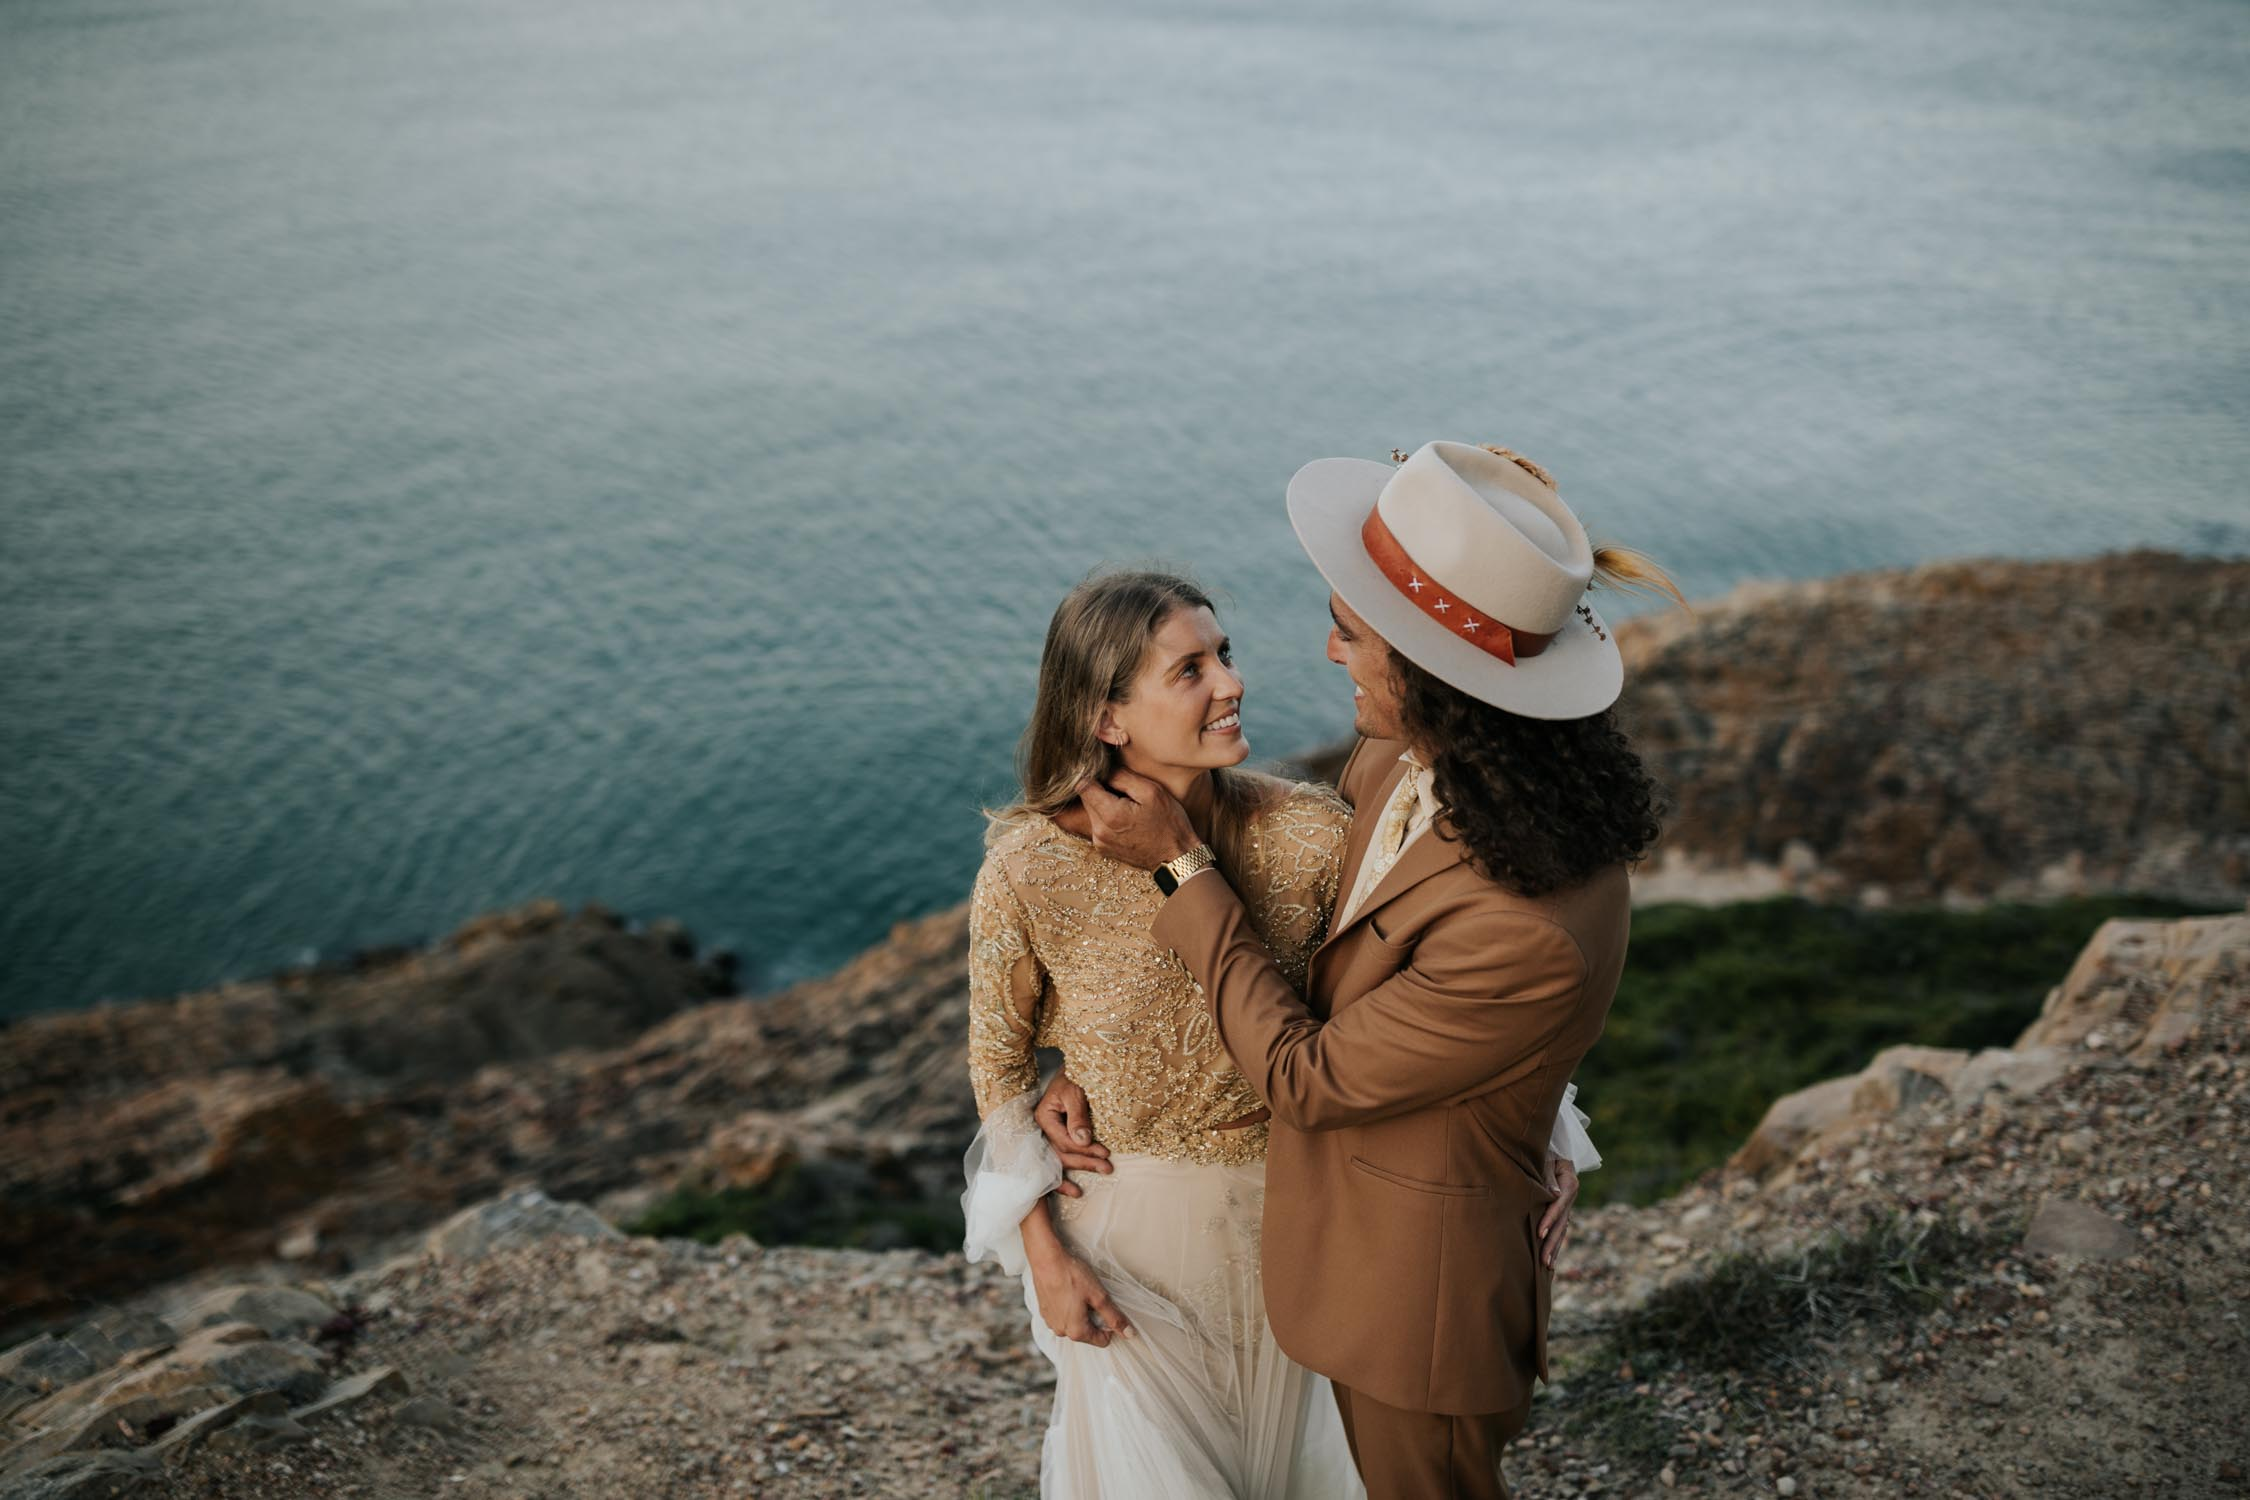 Groom wearing brown suite, beige shirt, brown Nguni cowhide tie, felt hat and foraged dried flowers holds bride wearing gypsy wedding dress with flared long sleeves, sheer skirt and gold detailed top at the ocean